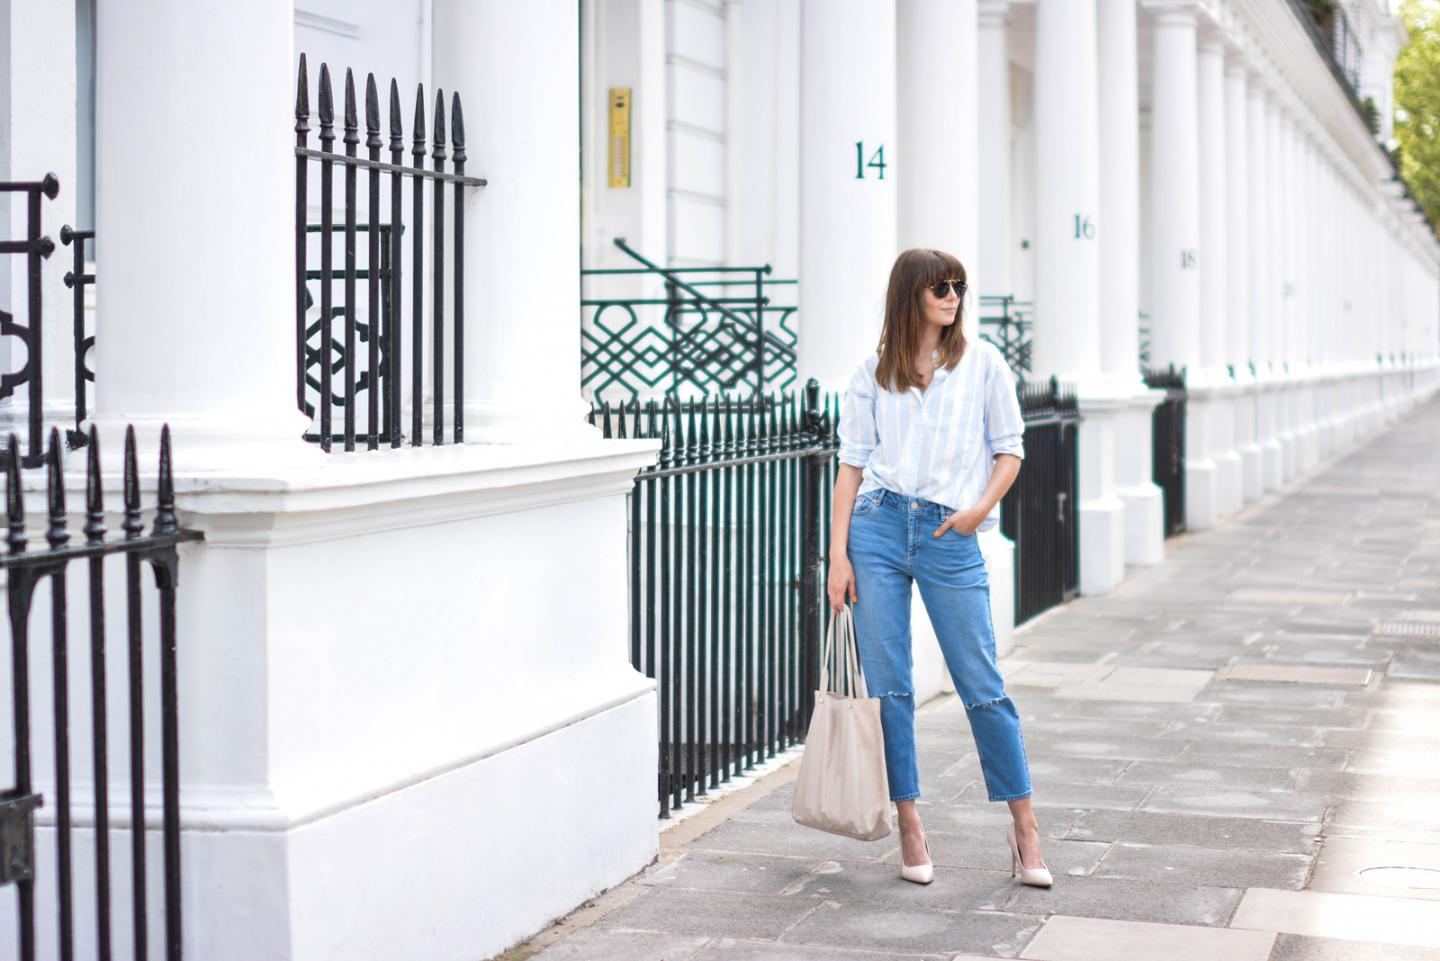 EJSTYLE - Emma Hill wears ASOS Thea girlfriend jeans with ripped knees, striped boyfriend shirt, leather suede nude shopper tote bag, nude patent pointed toe court shoes, aviator sunglasses, Street style